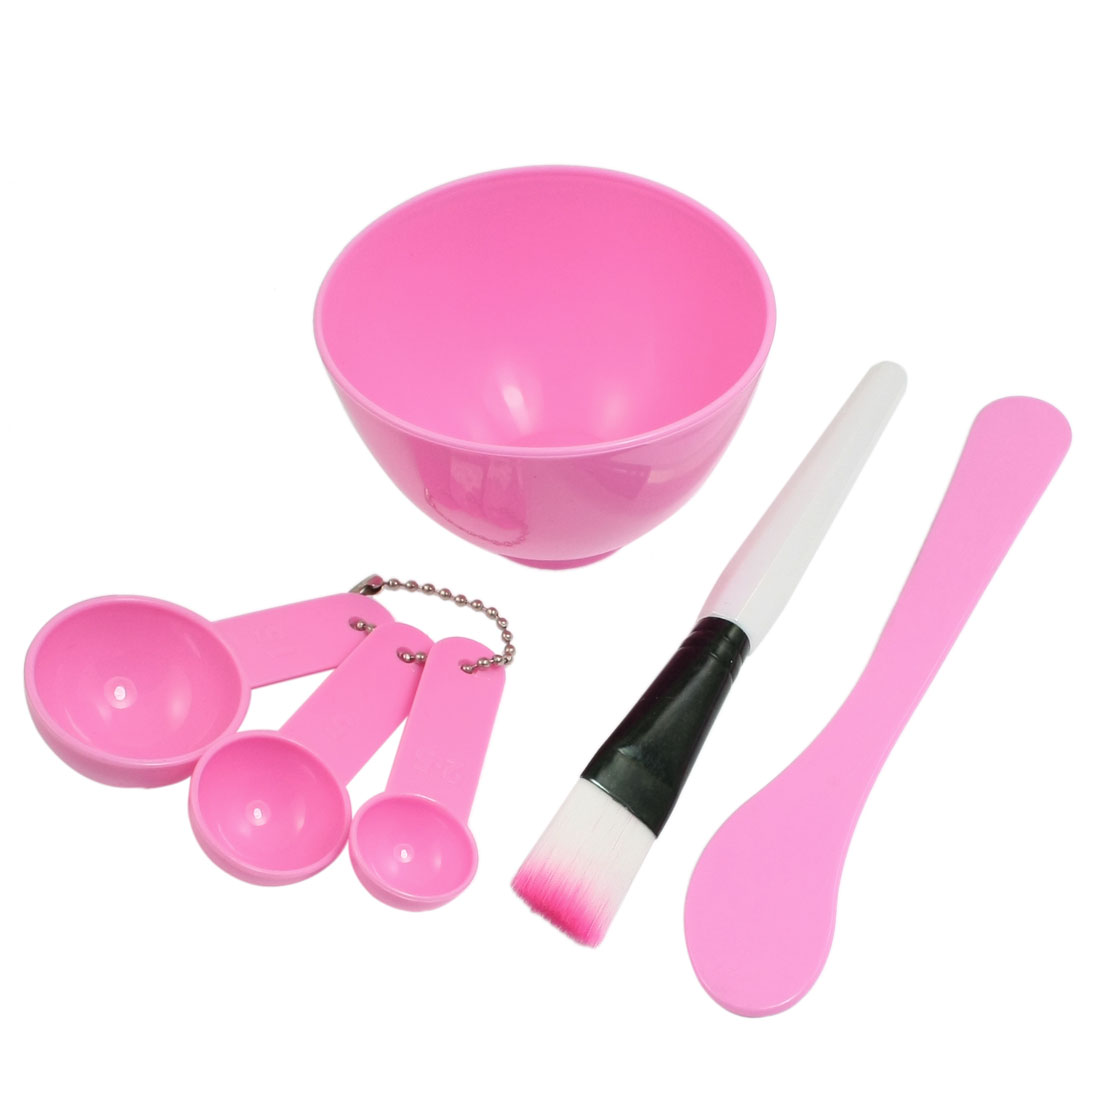 4 in 1 DIY Facial Mask Mixing Bowl Stick Brush Spoon Tool Pink for Women